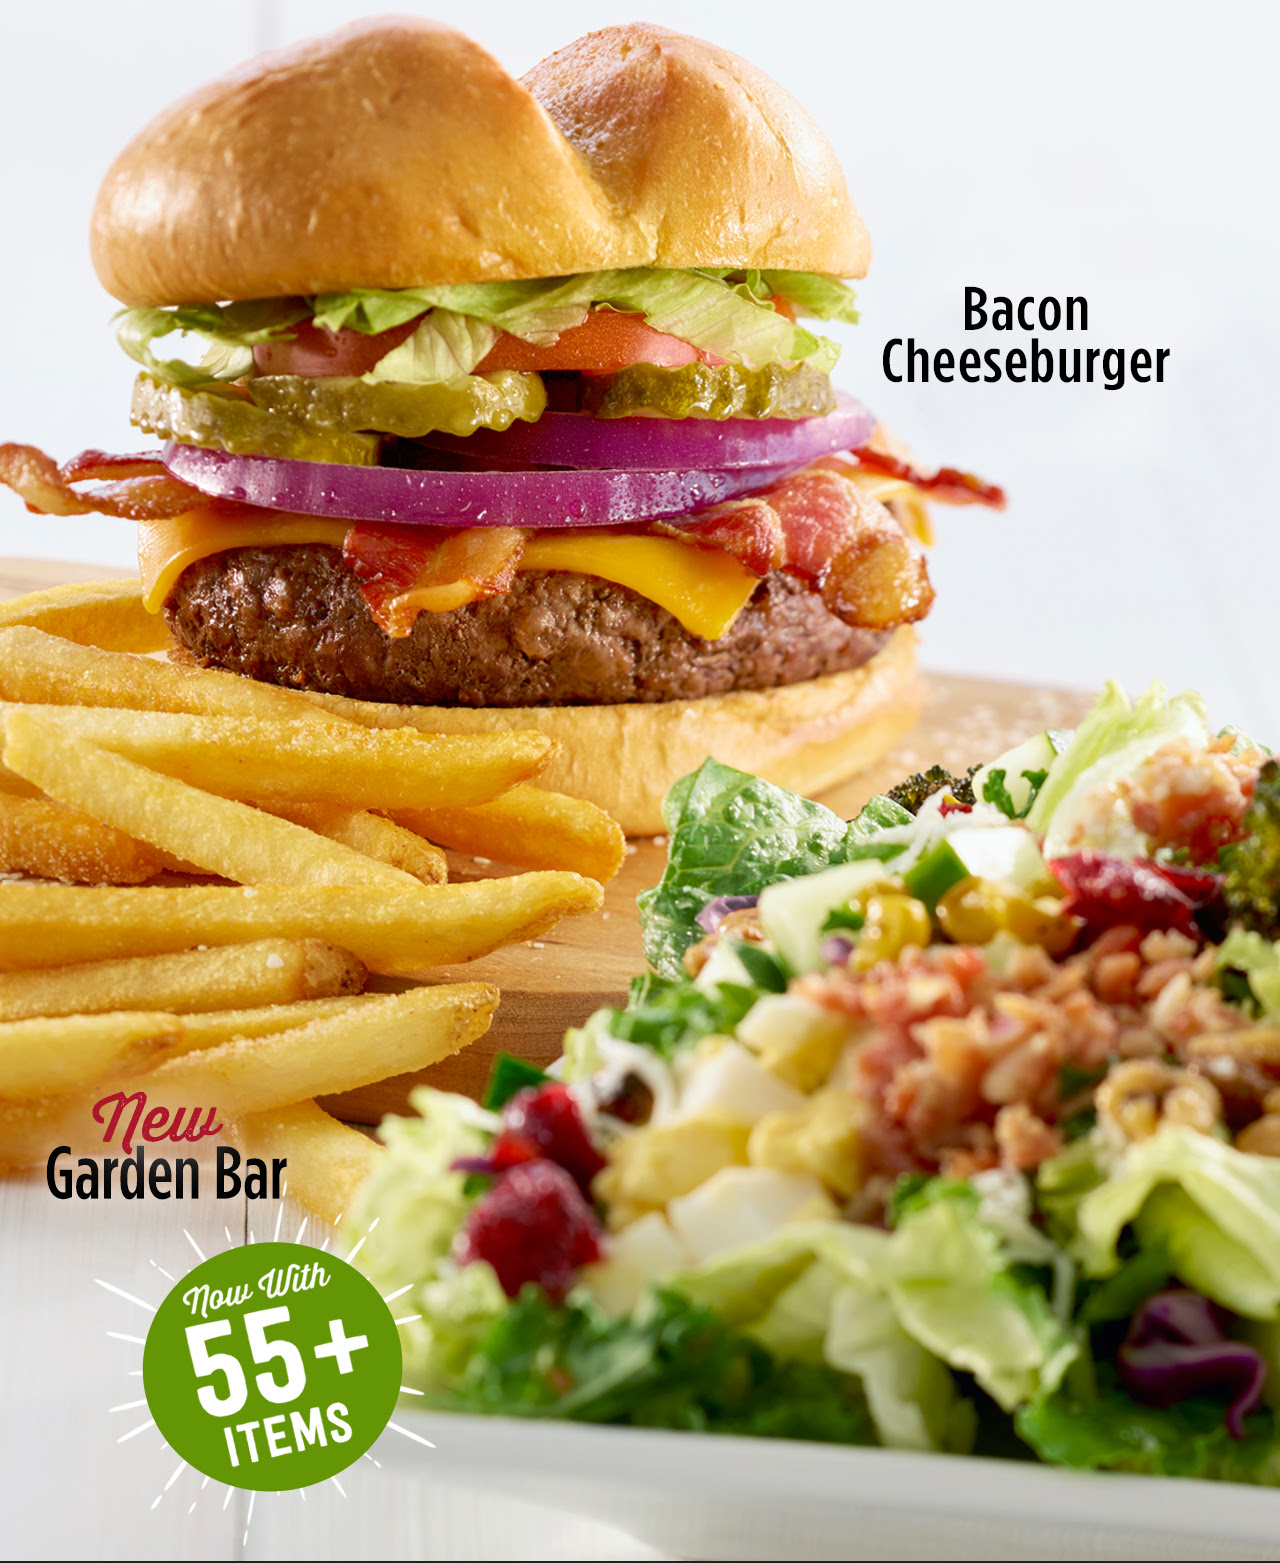 Enjoy a FREE Burger or Garden Bar for Your Birthday!